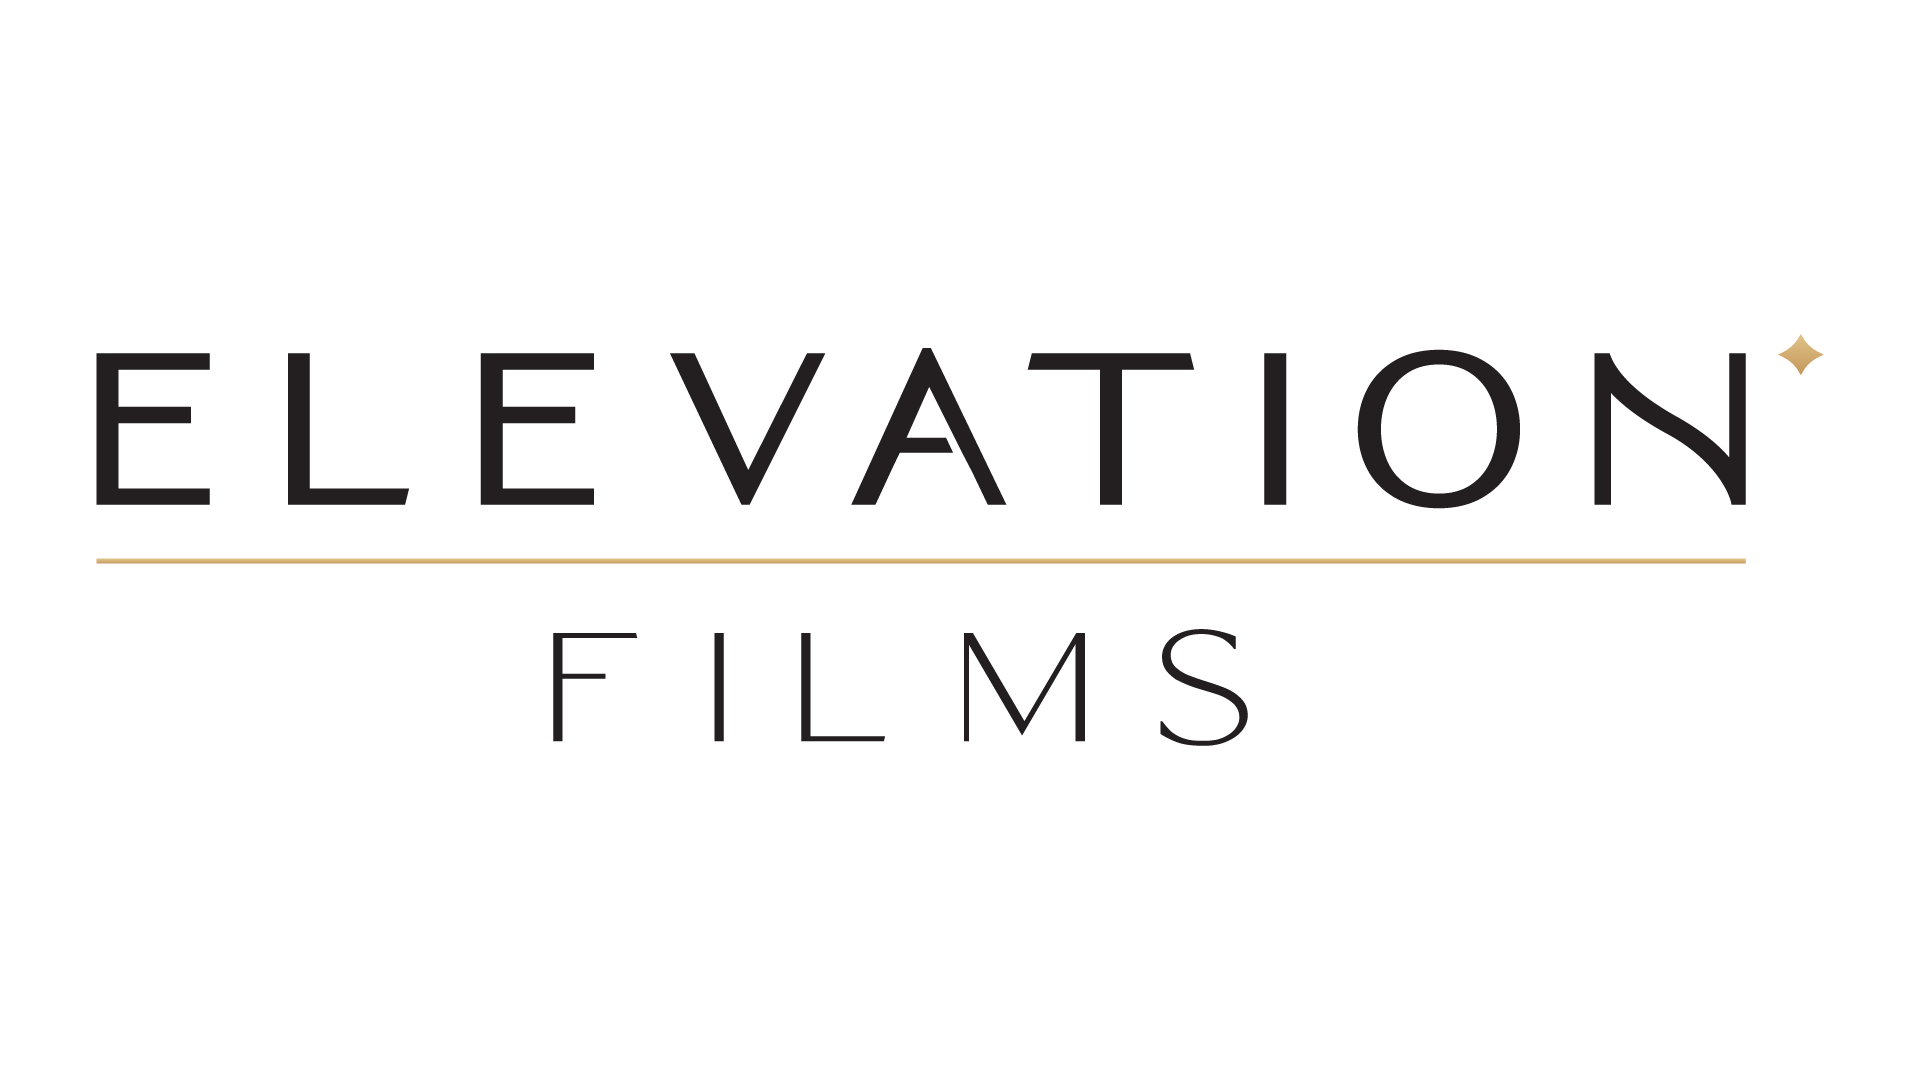 Elevation Films-primary logo-on light